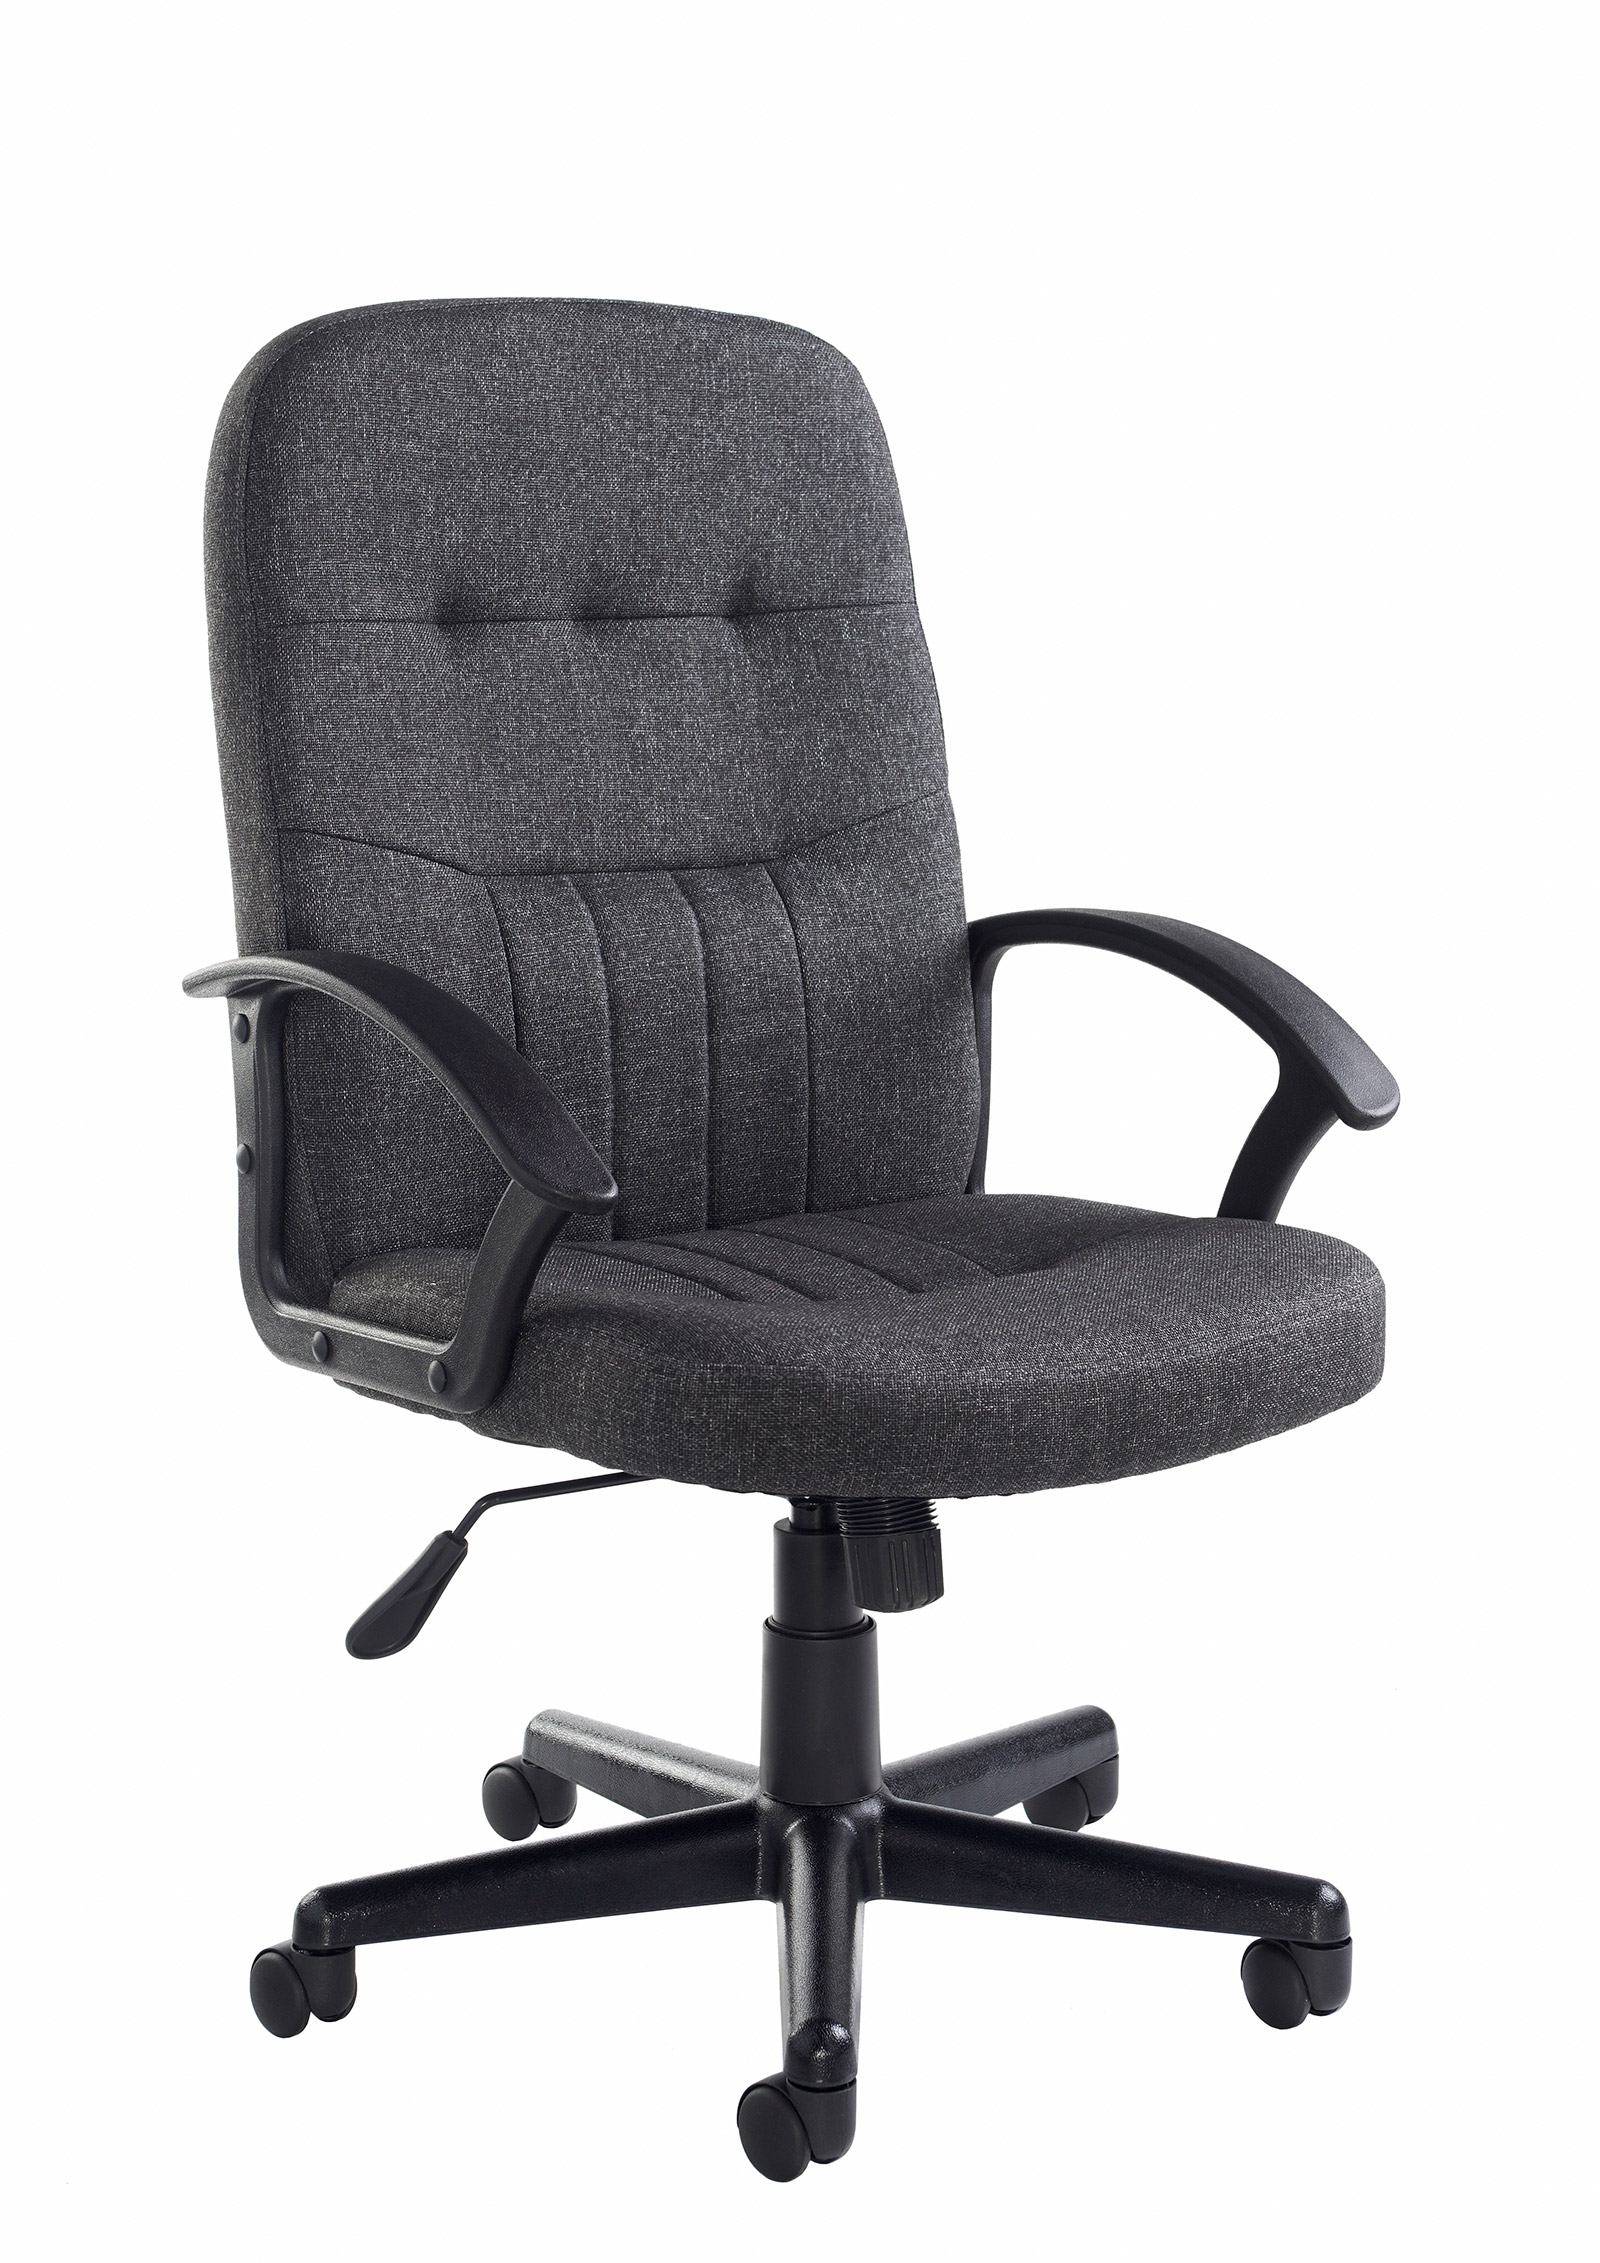 Cavalier Medium back managers chair-Charcoal